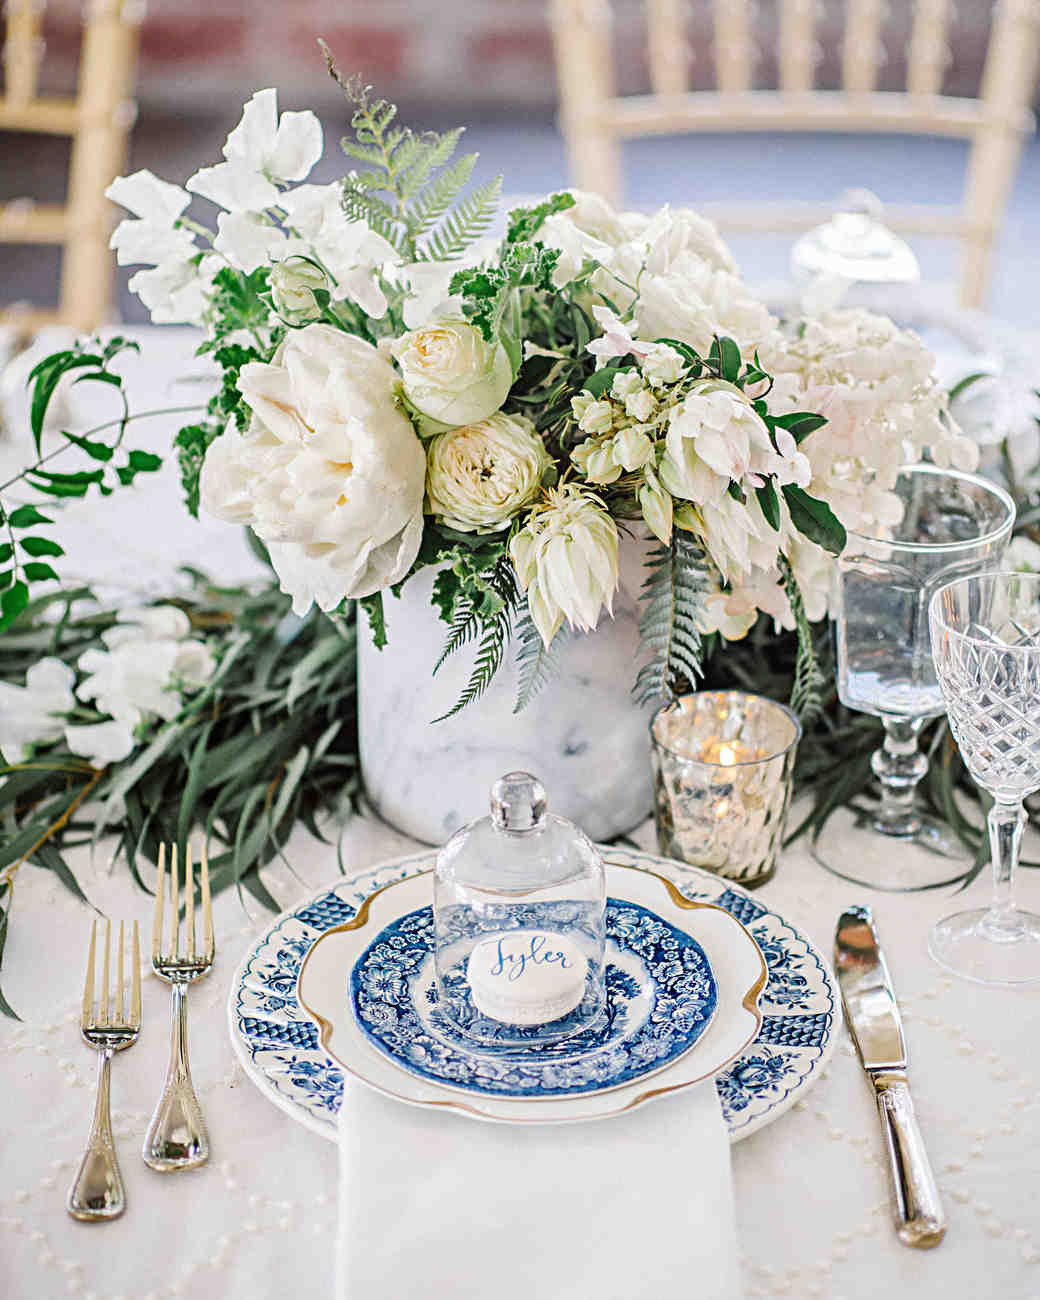 gold mint julep vases of 79 white wedding centerpieces martha stewart weddings throughout hannah steve wedding california china macarons